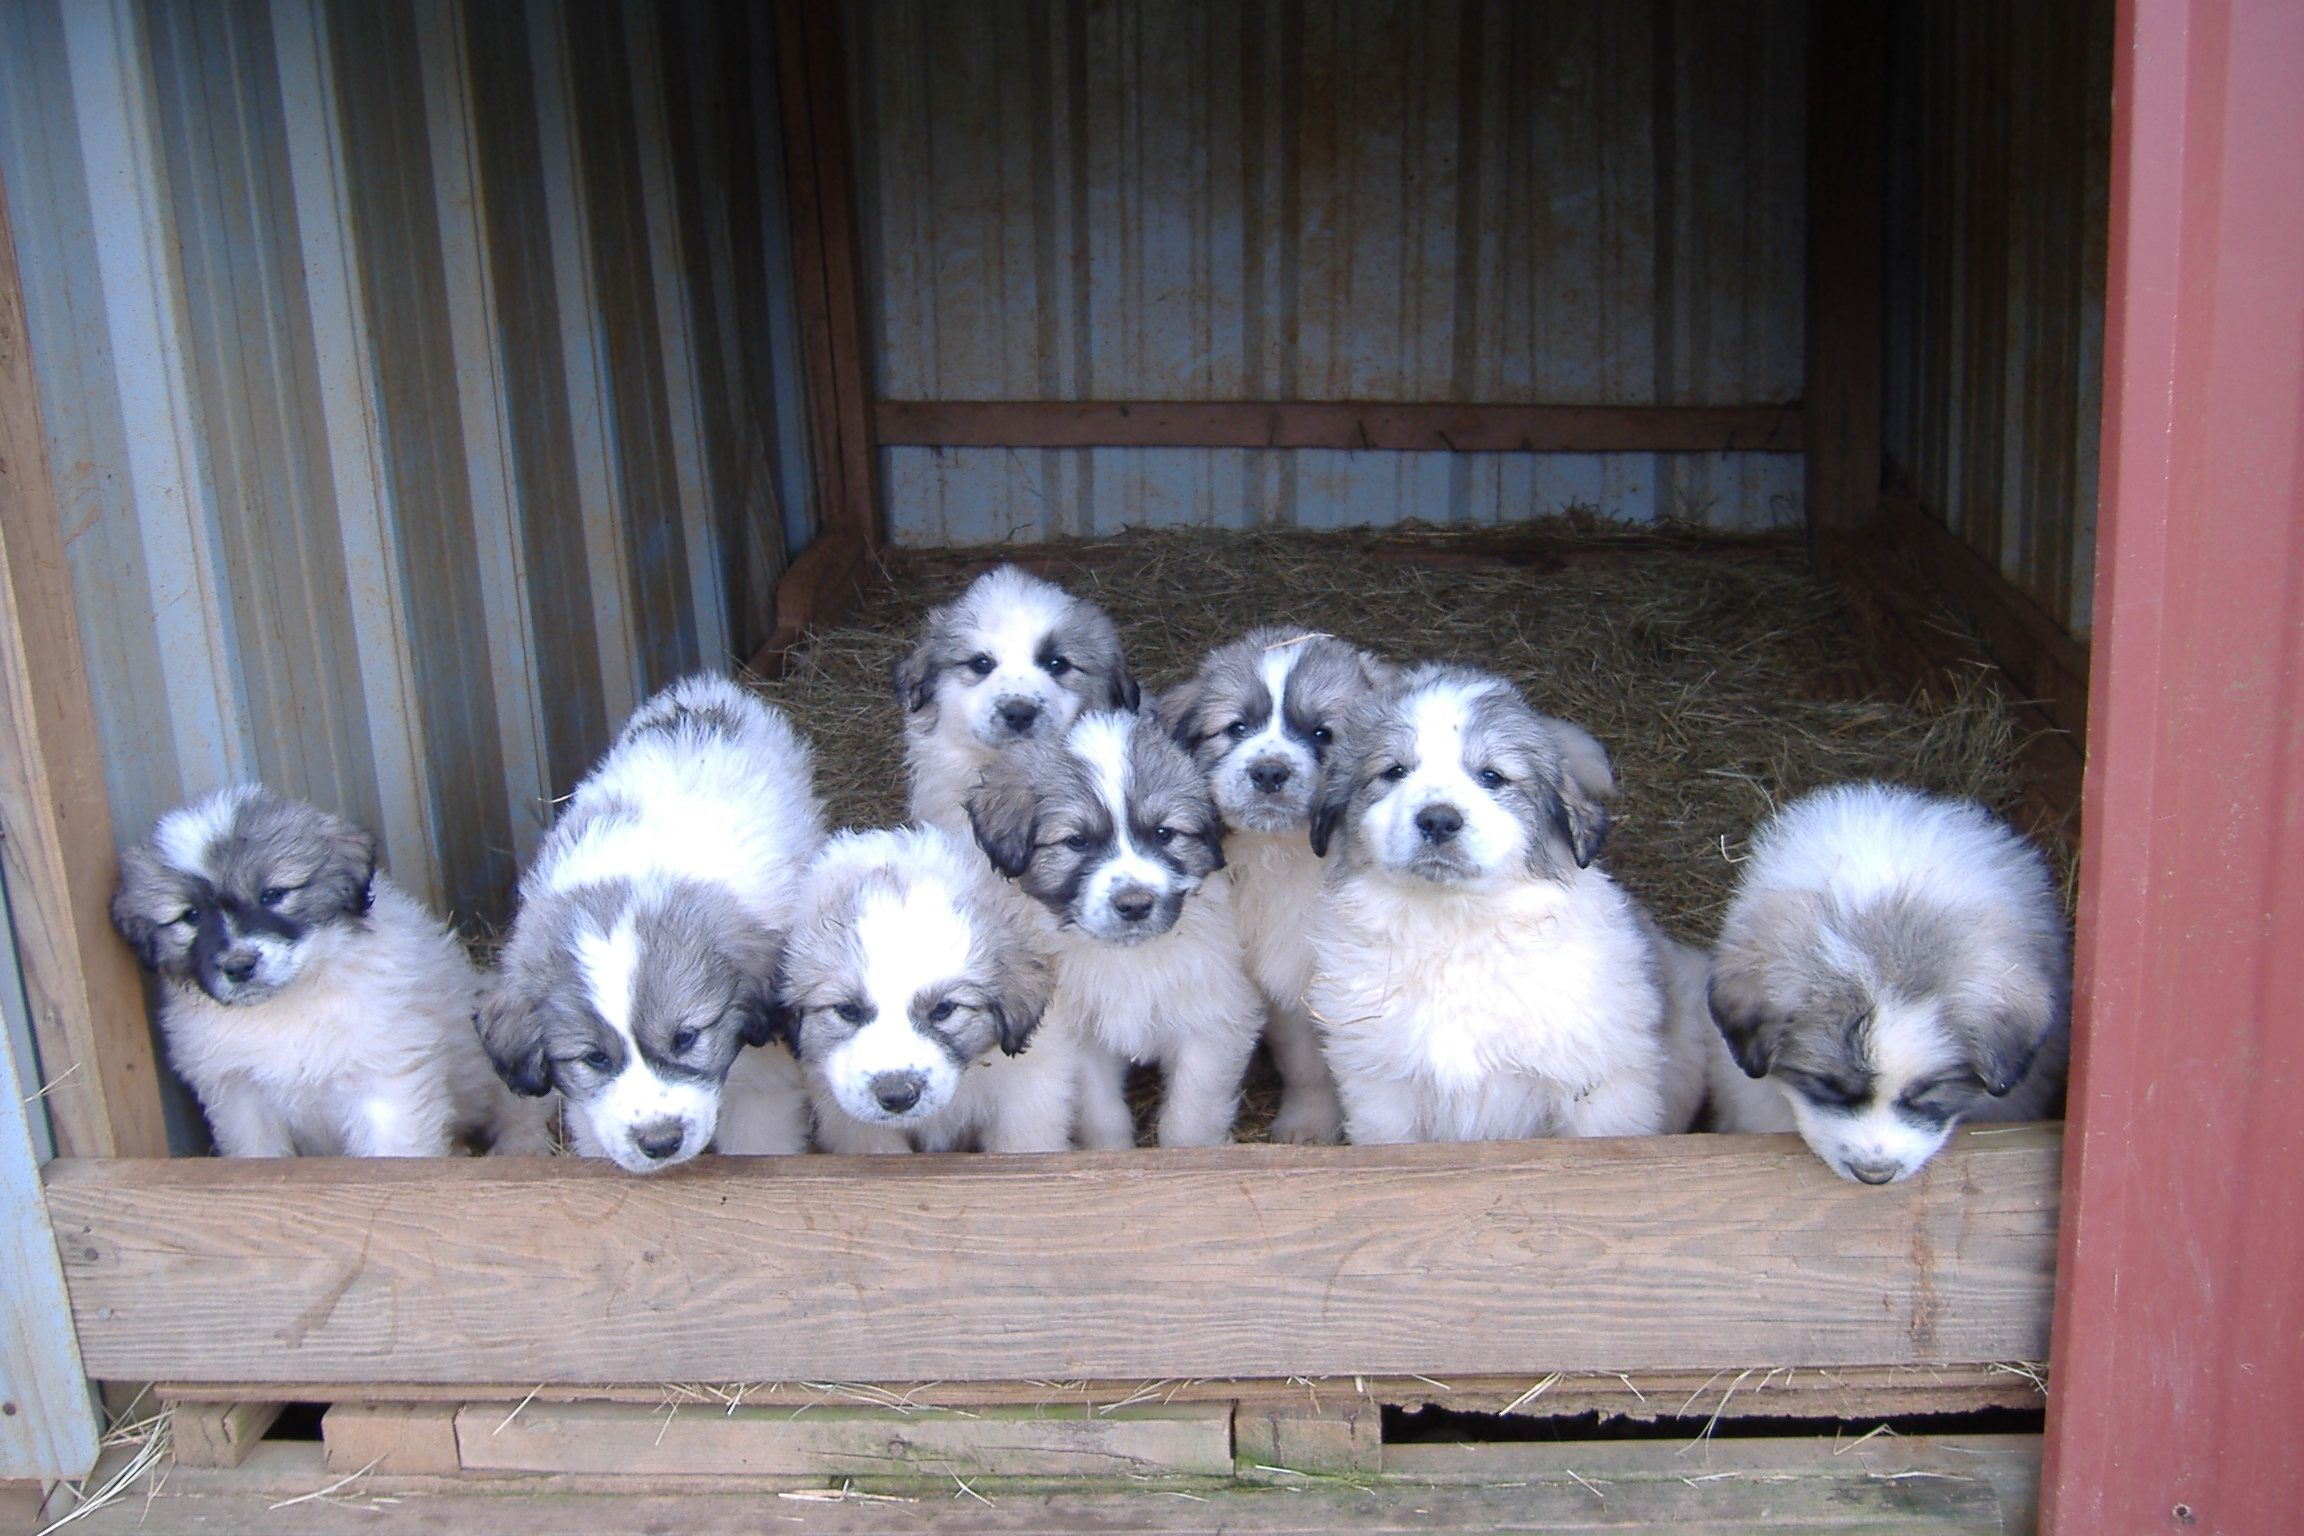 Group Of Puppies Few Of The Puppies From Previous Litter Cheyenne Puppy Great Pyrenees Dog Great Pyrenees Top Dog Breeds